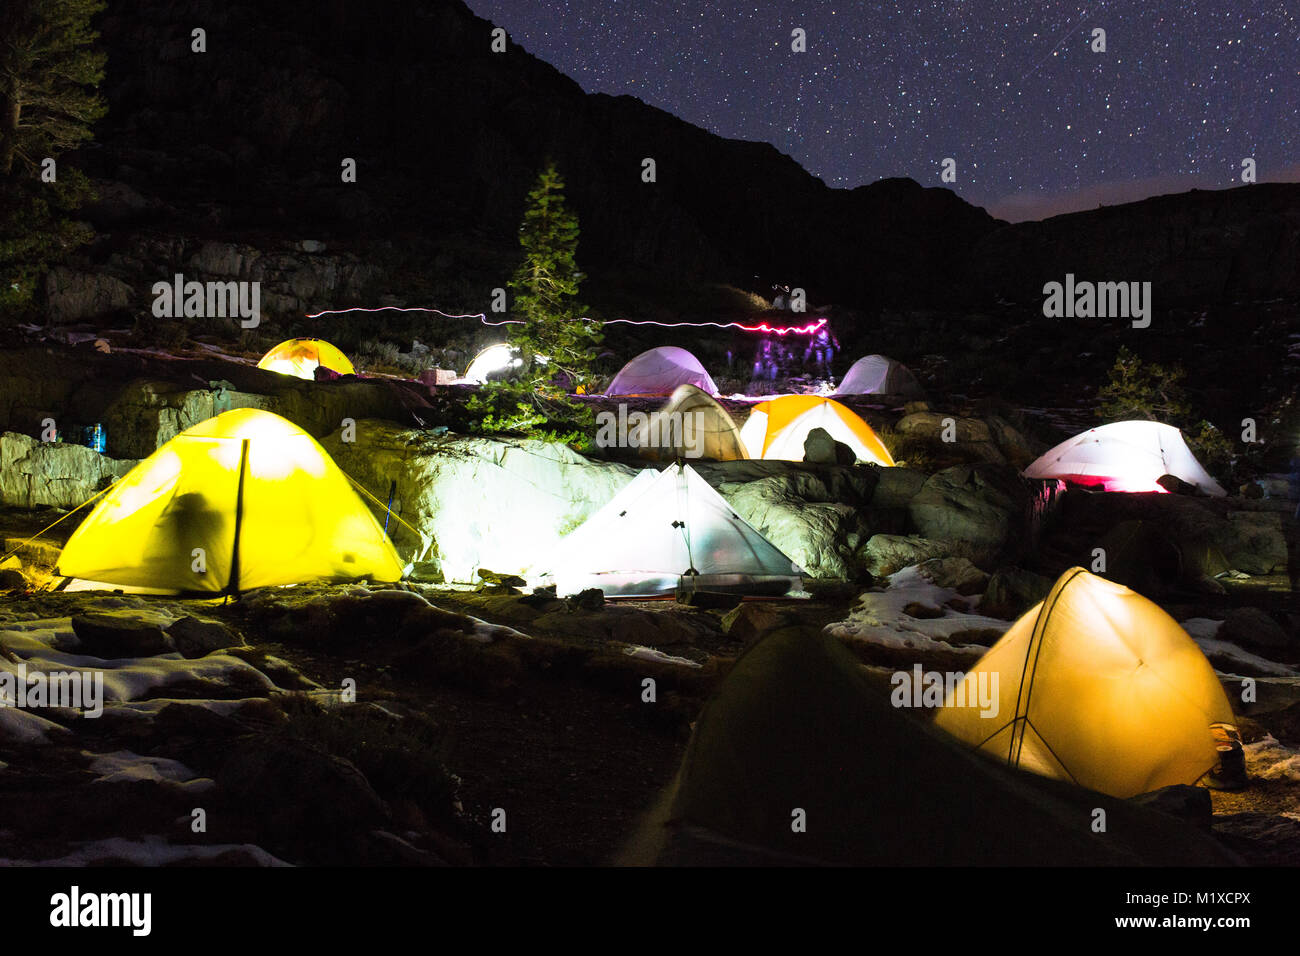 Alamy & Group of tents at night under a starry sky in the Sierra Nevada ...